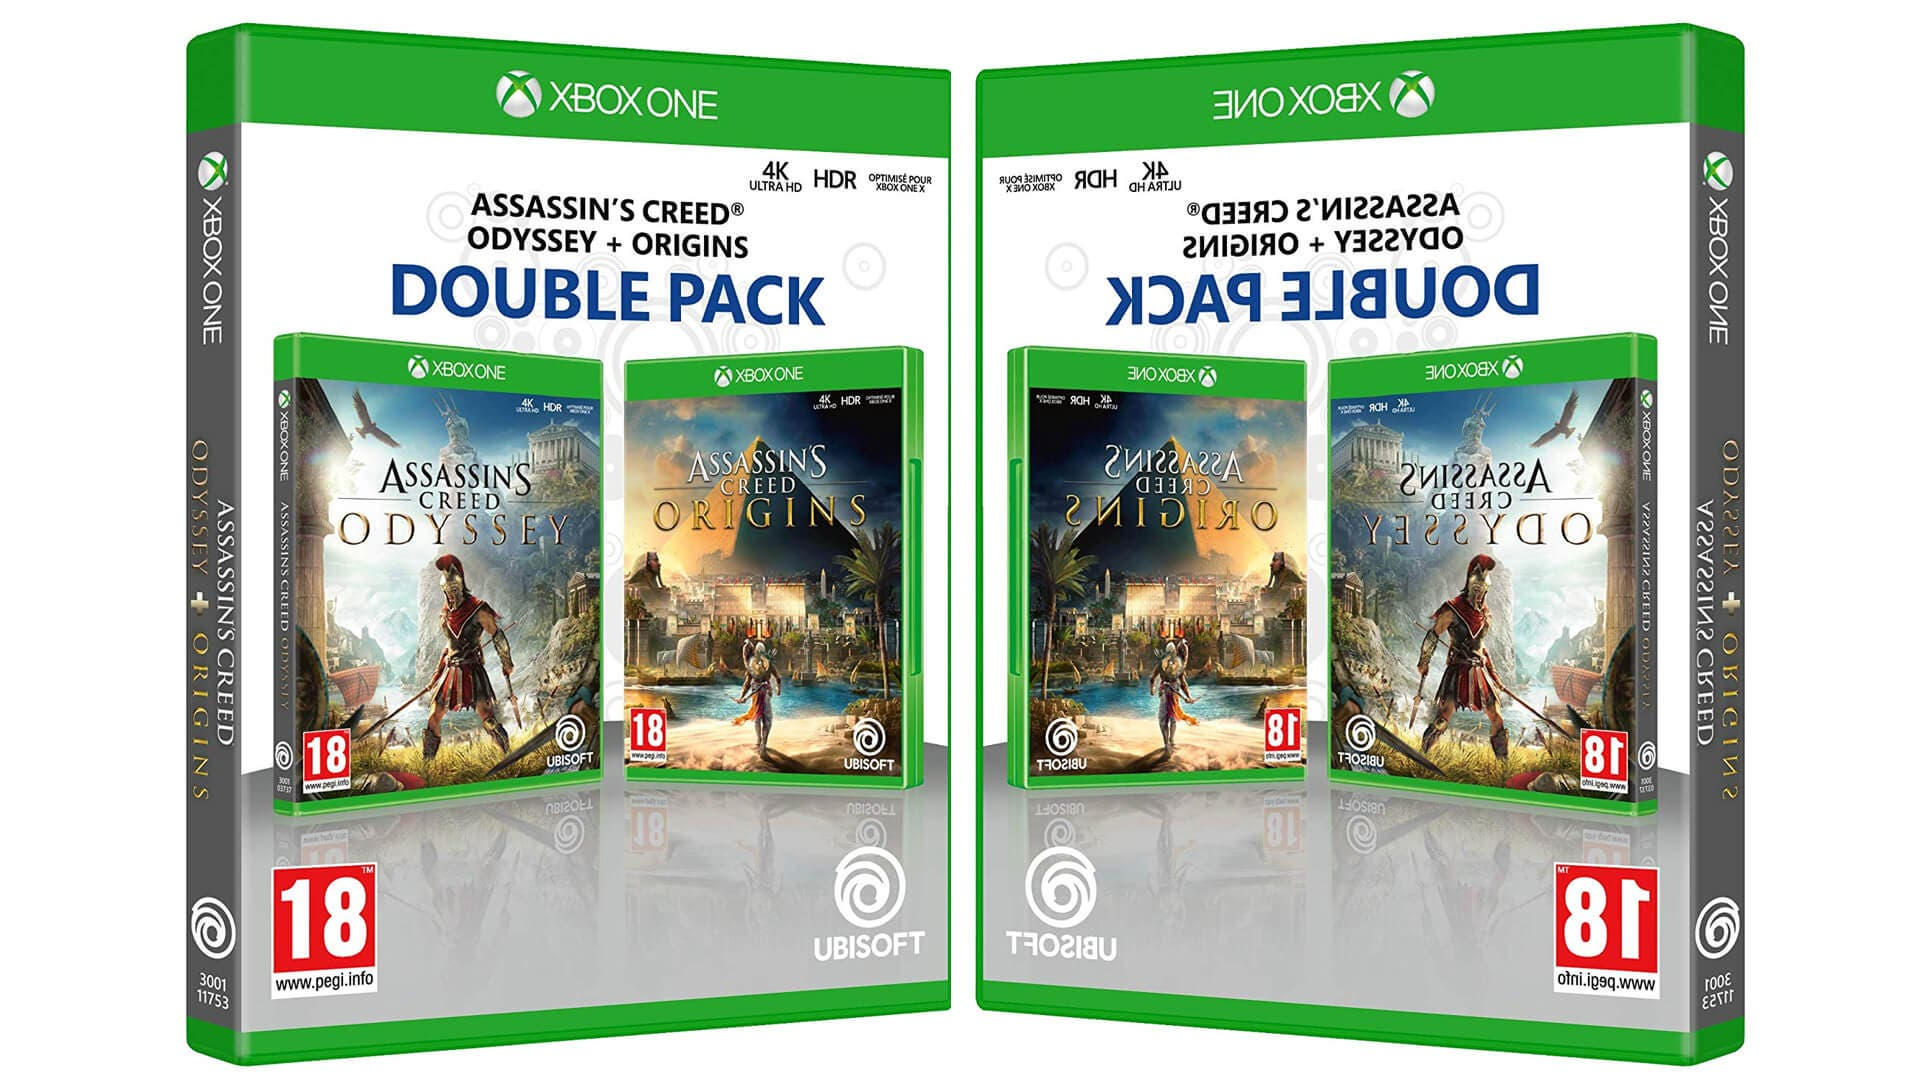 Gran oferta de Doble Pack Assassin's Creed Origins + Odyssey para Xbox 3